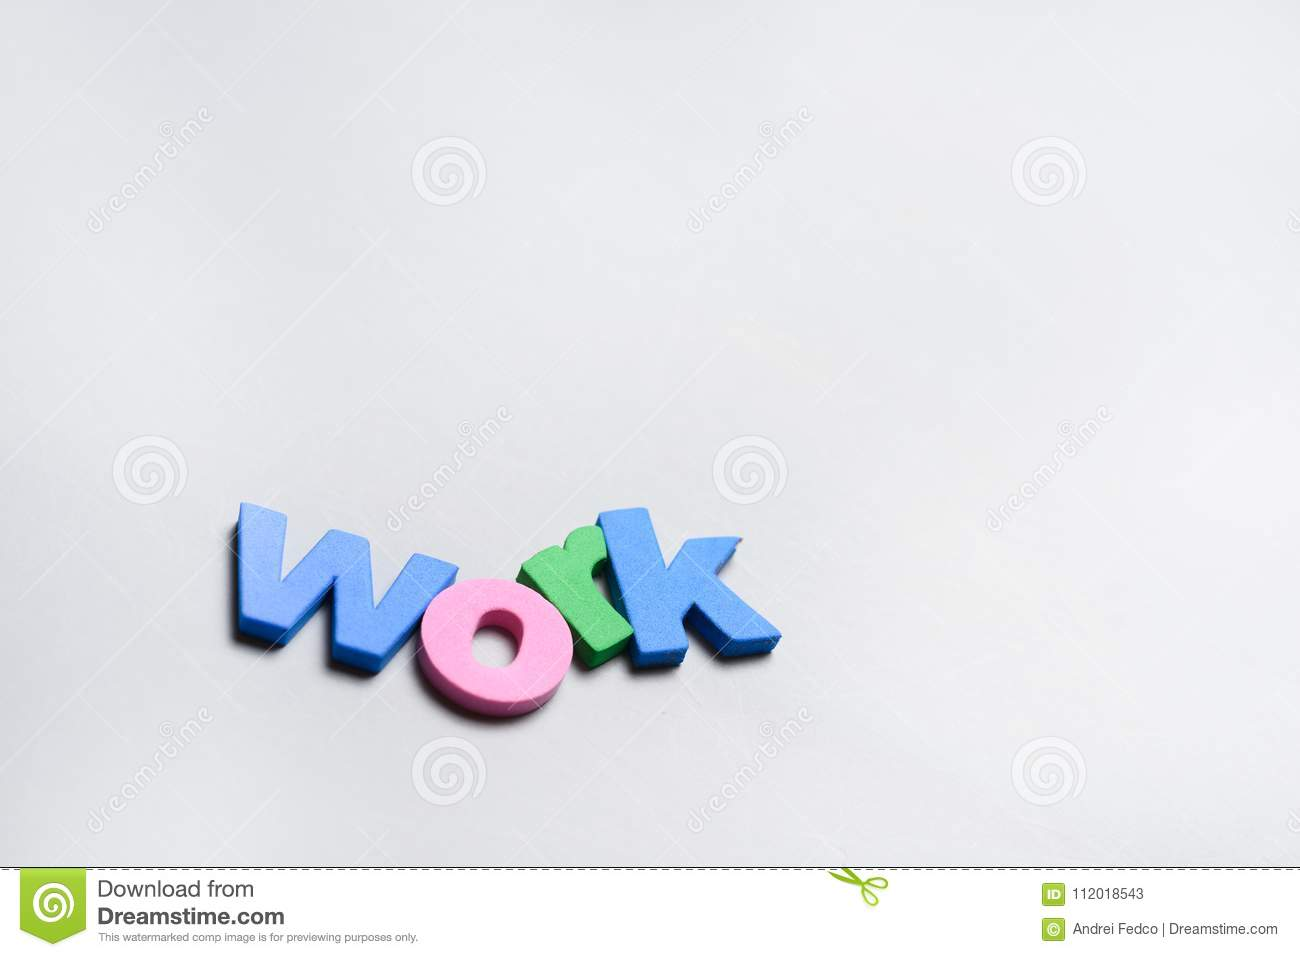 work word written on white background with colorful polystyrene